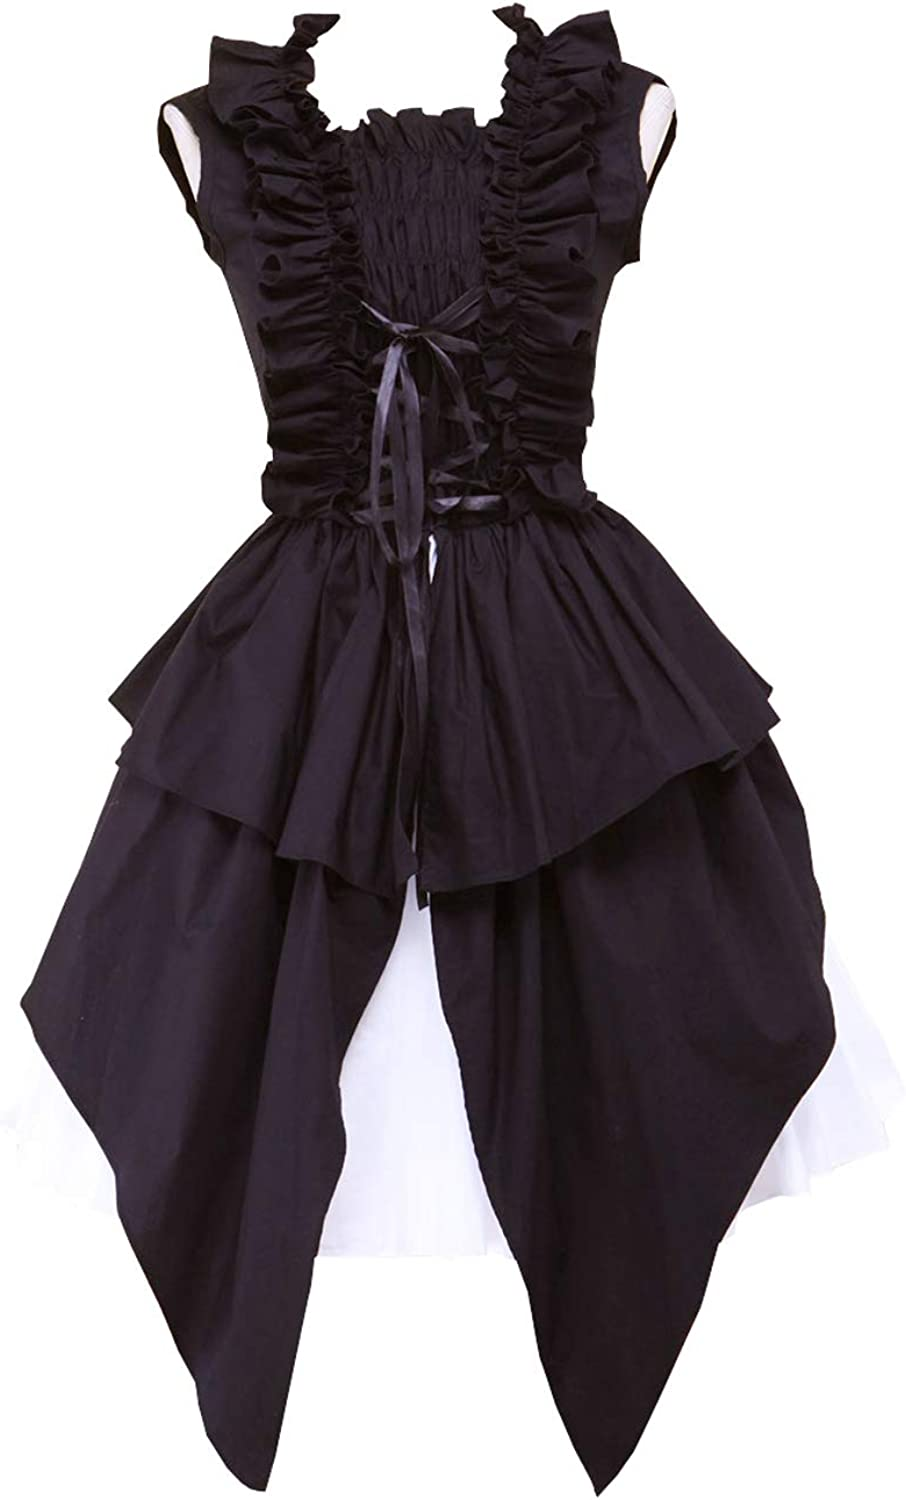 Antaina Black Cotton Halter Ruffle Classic Gothic Punk Lolita Cosplay Dress